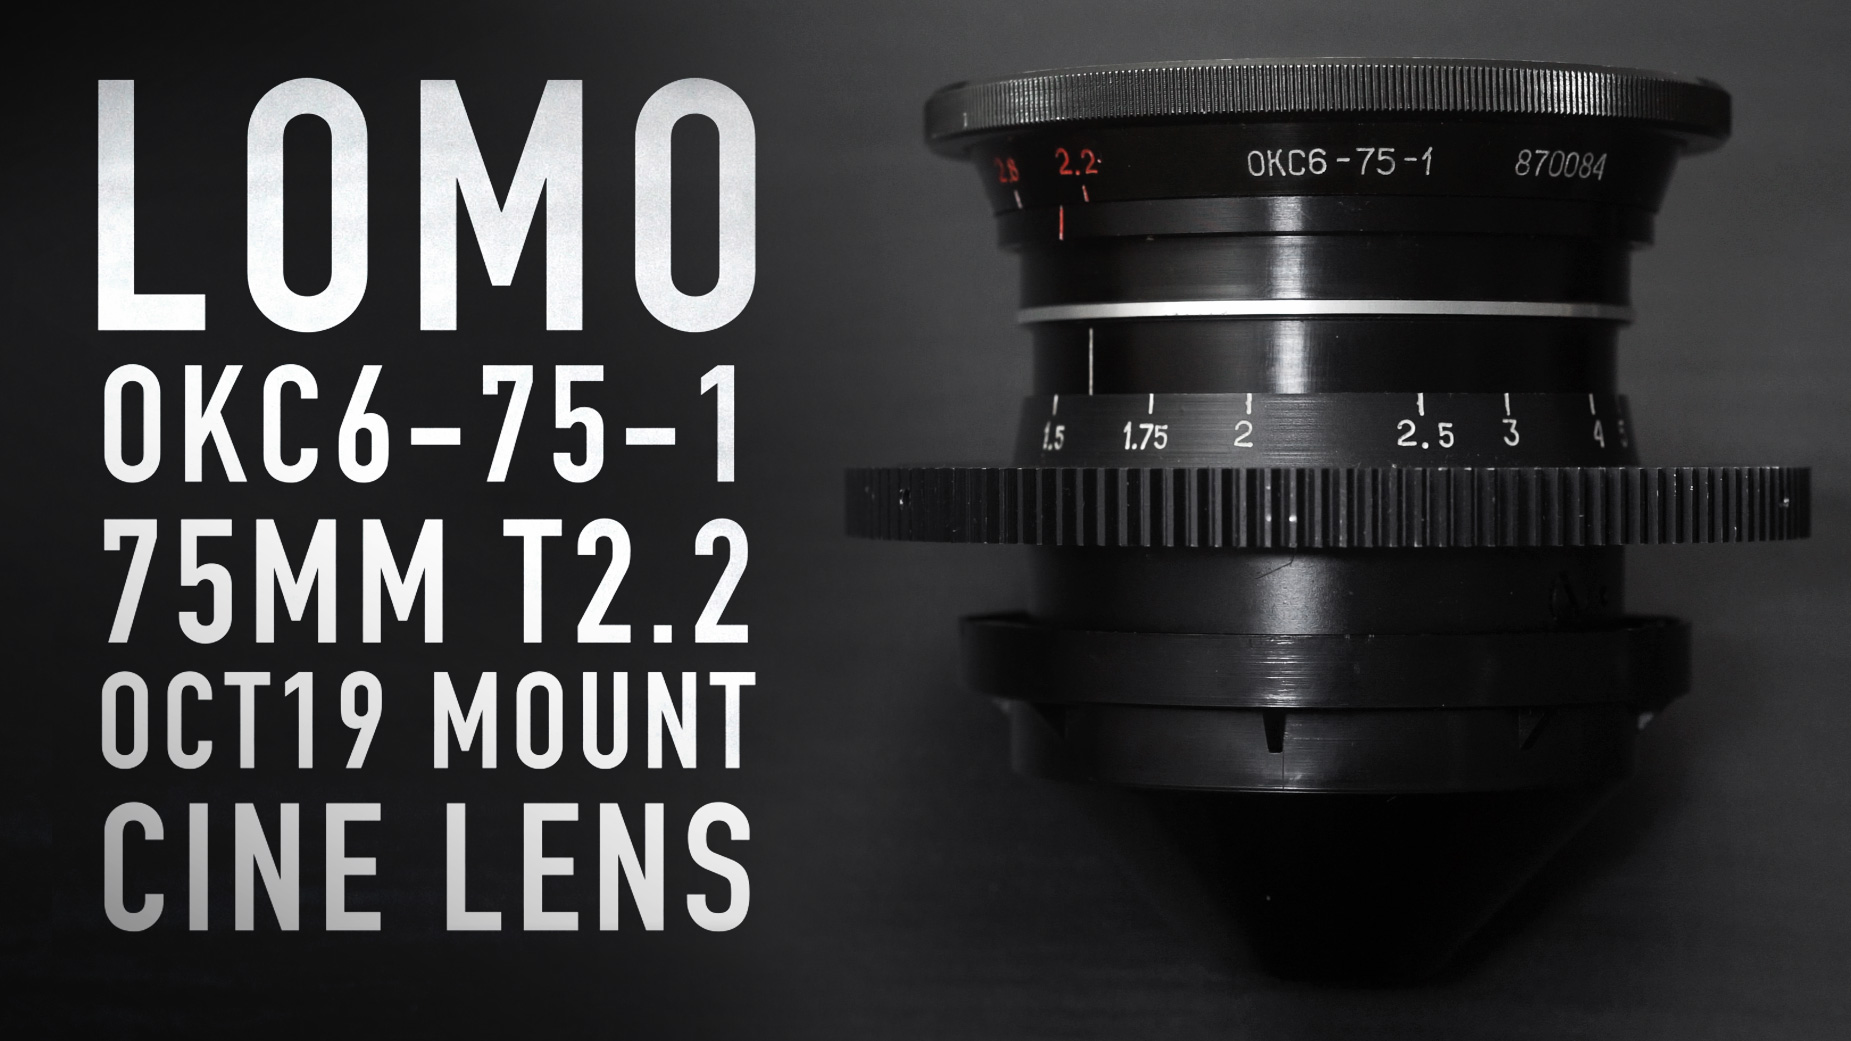 LOMO 75mm T2.2 OCT19 Russian Cine Lens | In-Depth Review